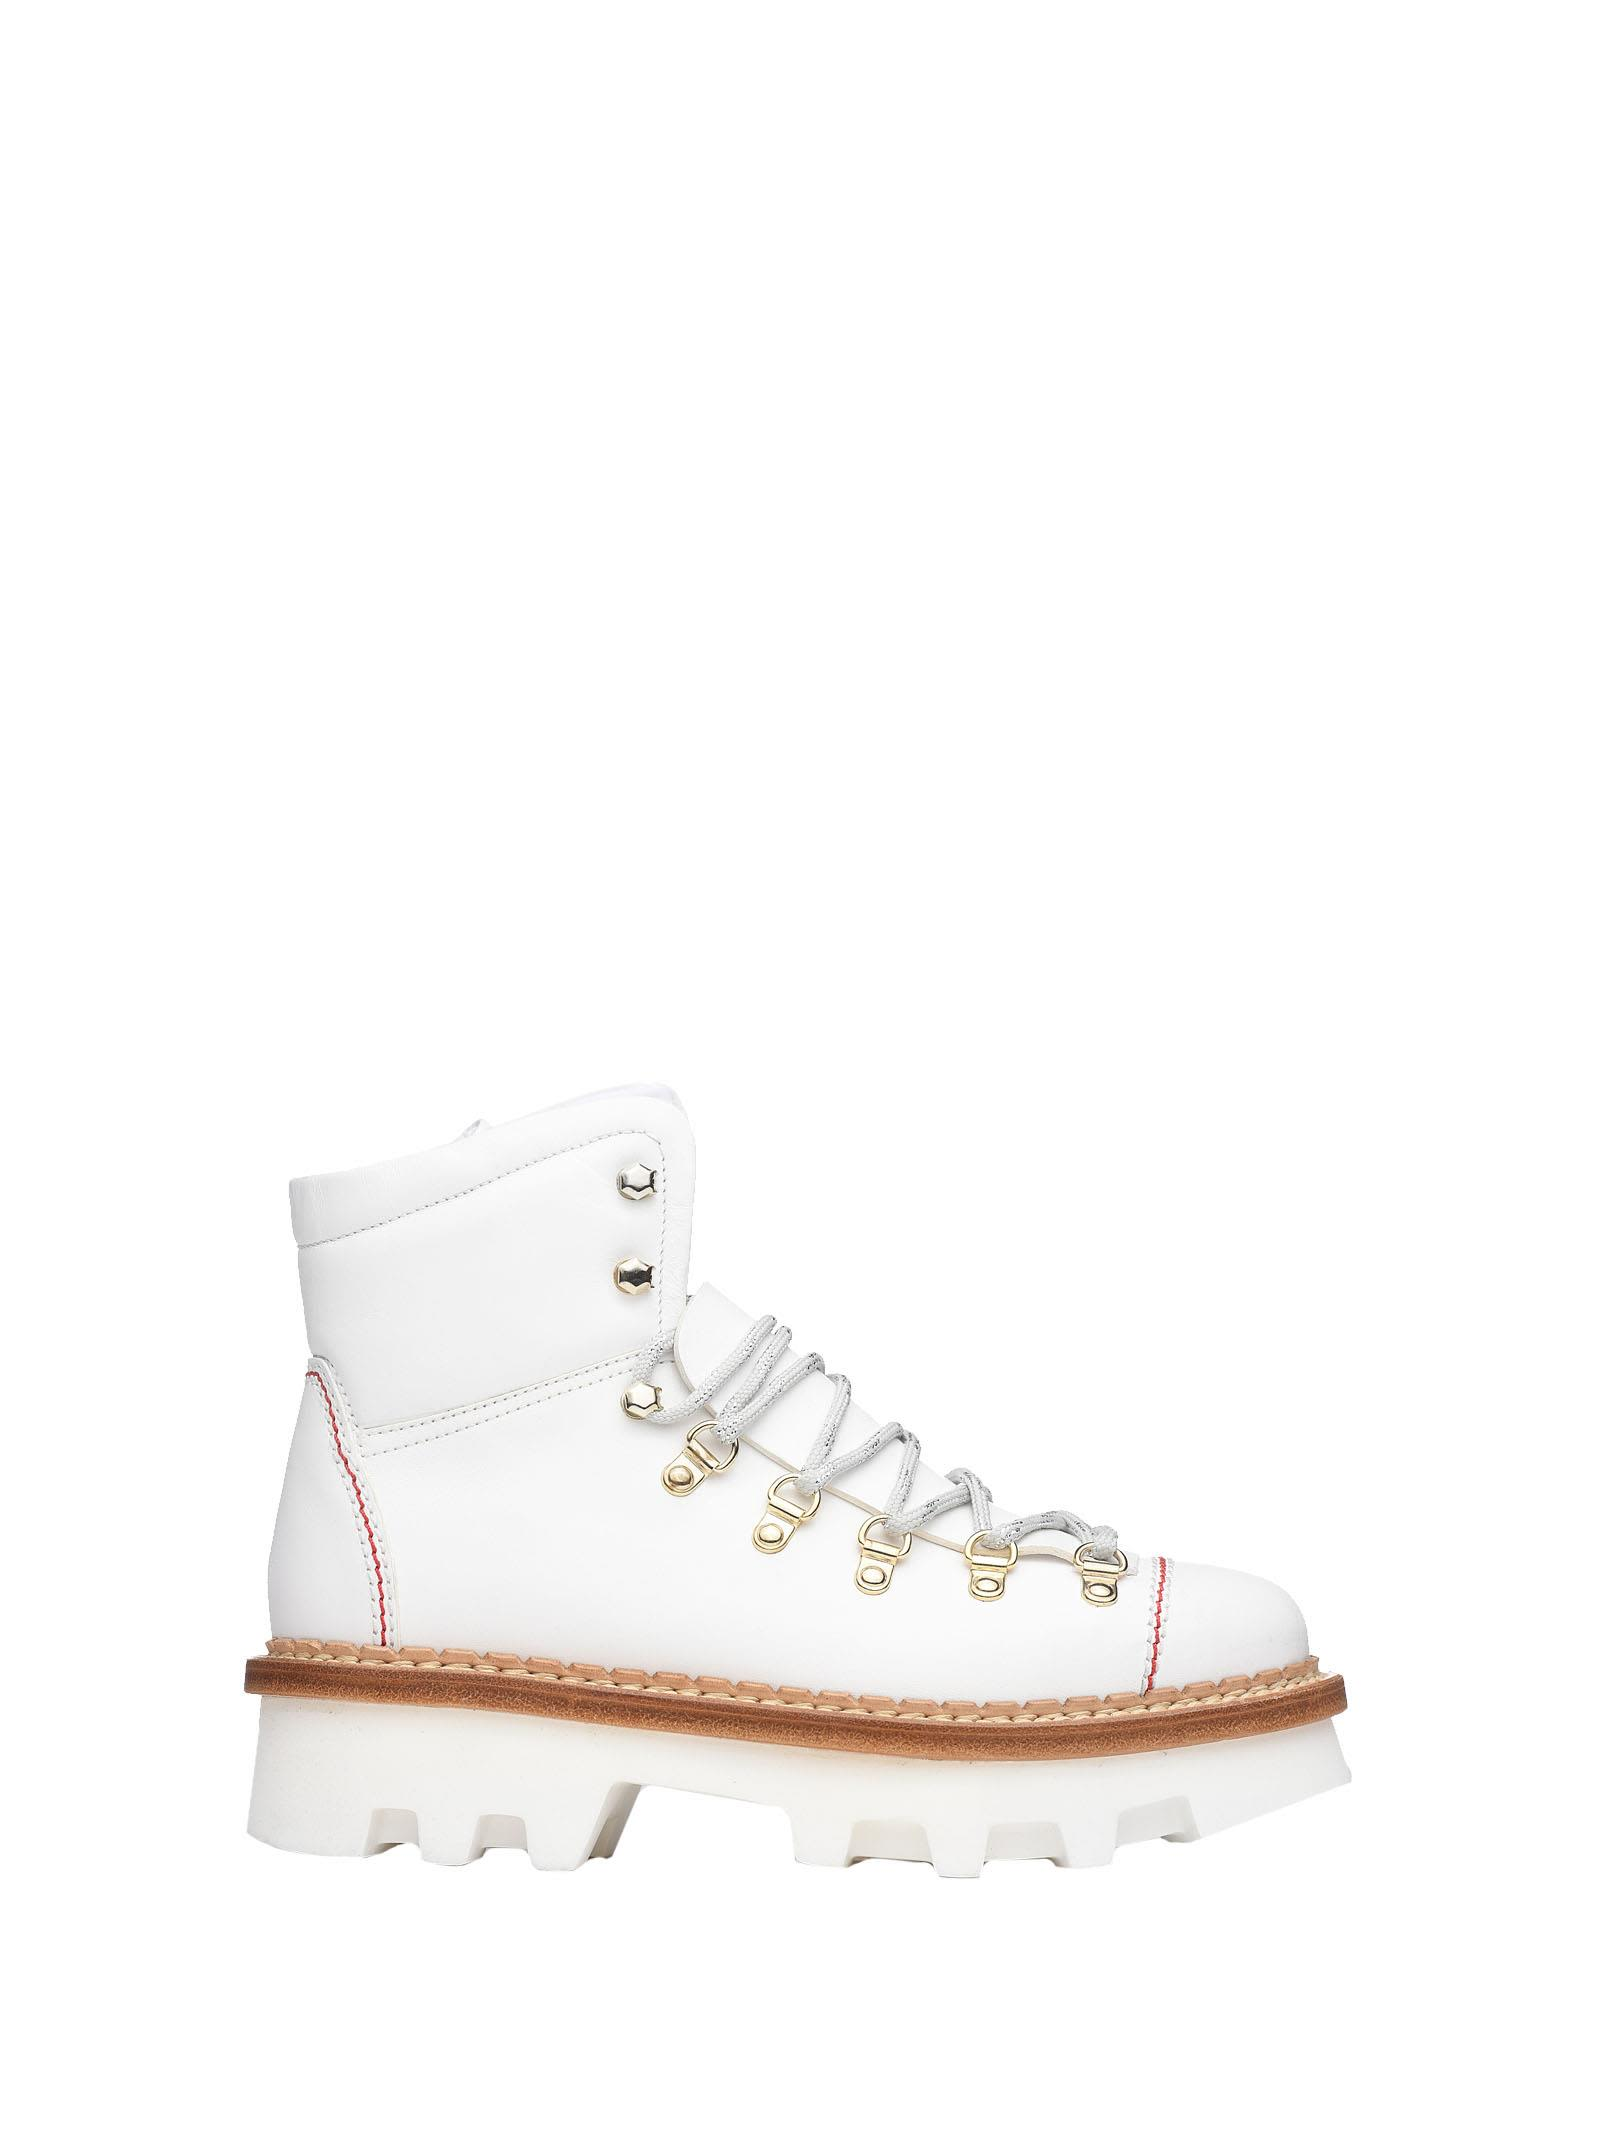 BARRACUDA White Leather Ankle Boots in Biano